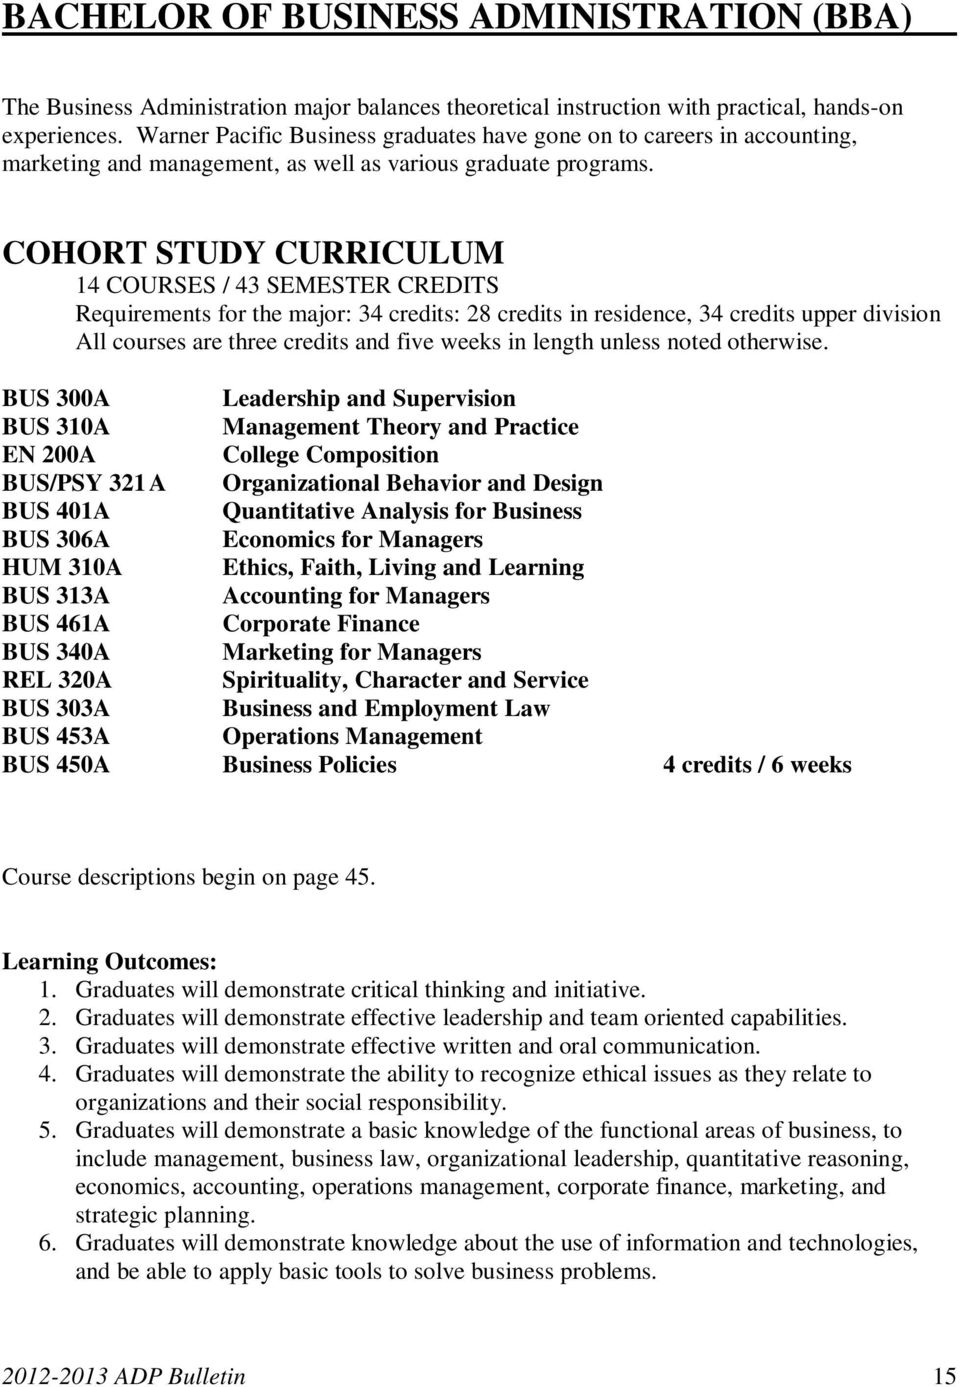 COHORT STUDY CURRICULUM 14 COURSES / 43 SEMESTER CREDITS Requirements for the major: 34 credits: 28 credits in residence, 34 credits upper division All courses are three credits and five weeks in